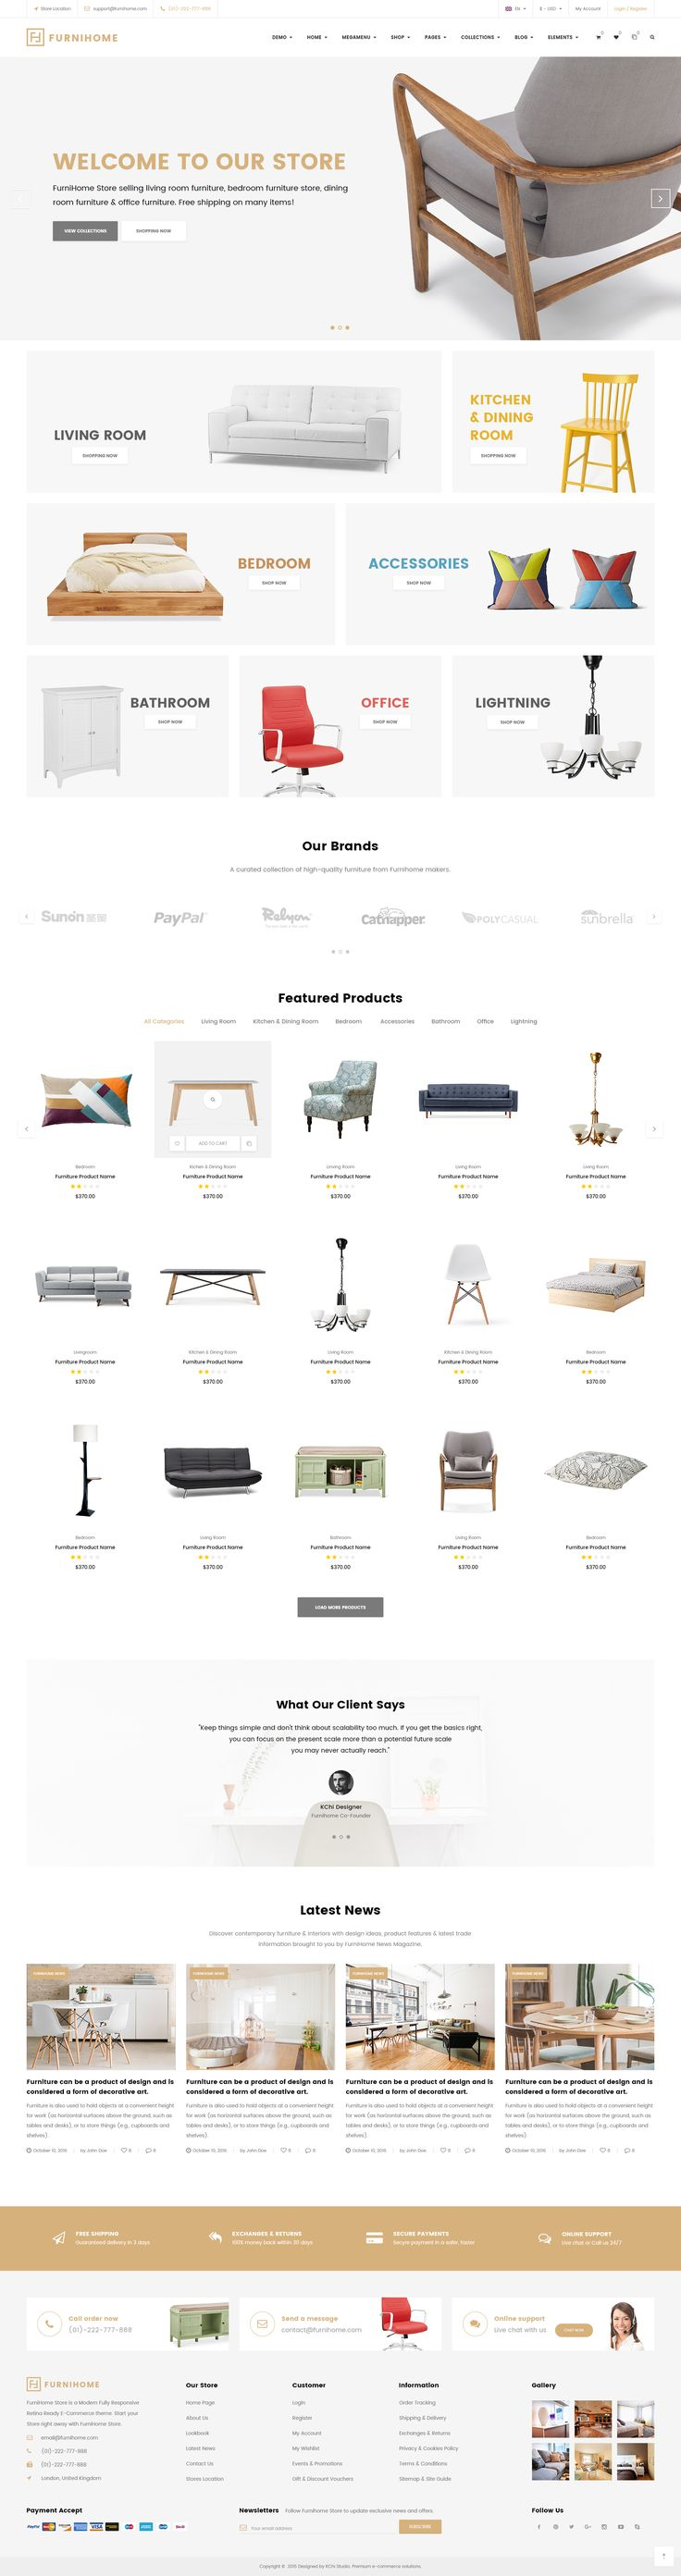 Furnihome - E-Commerce PSD Template for Furniture Store #psd #psd #furniture store • Download ➝ https://themeforest.net/item/furnihome-ecommerce-psd-template-for-furniture-store/18977292?ref=pxcr